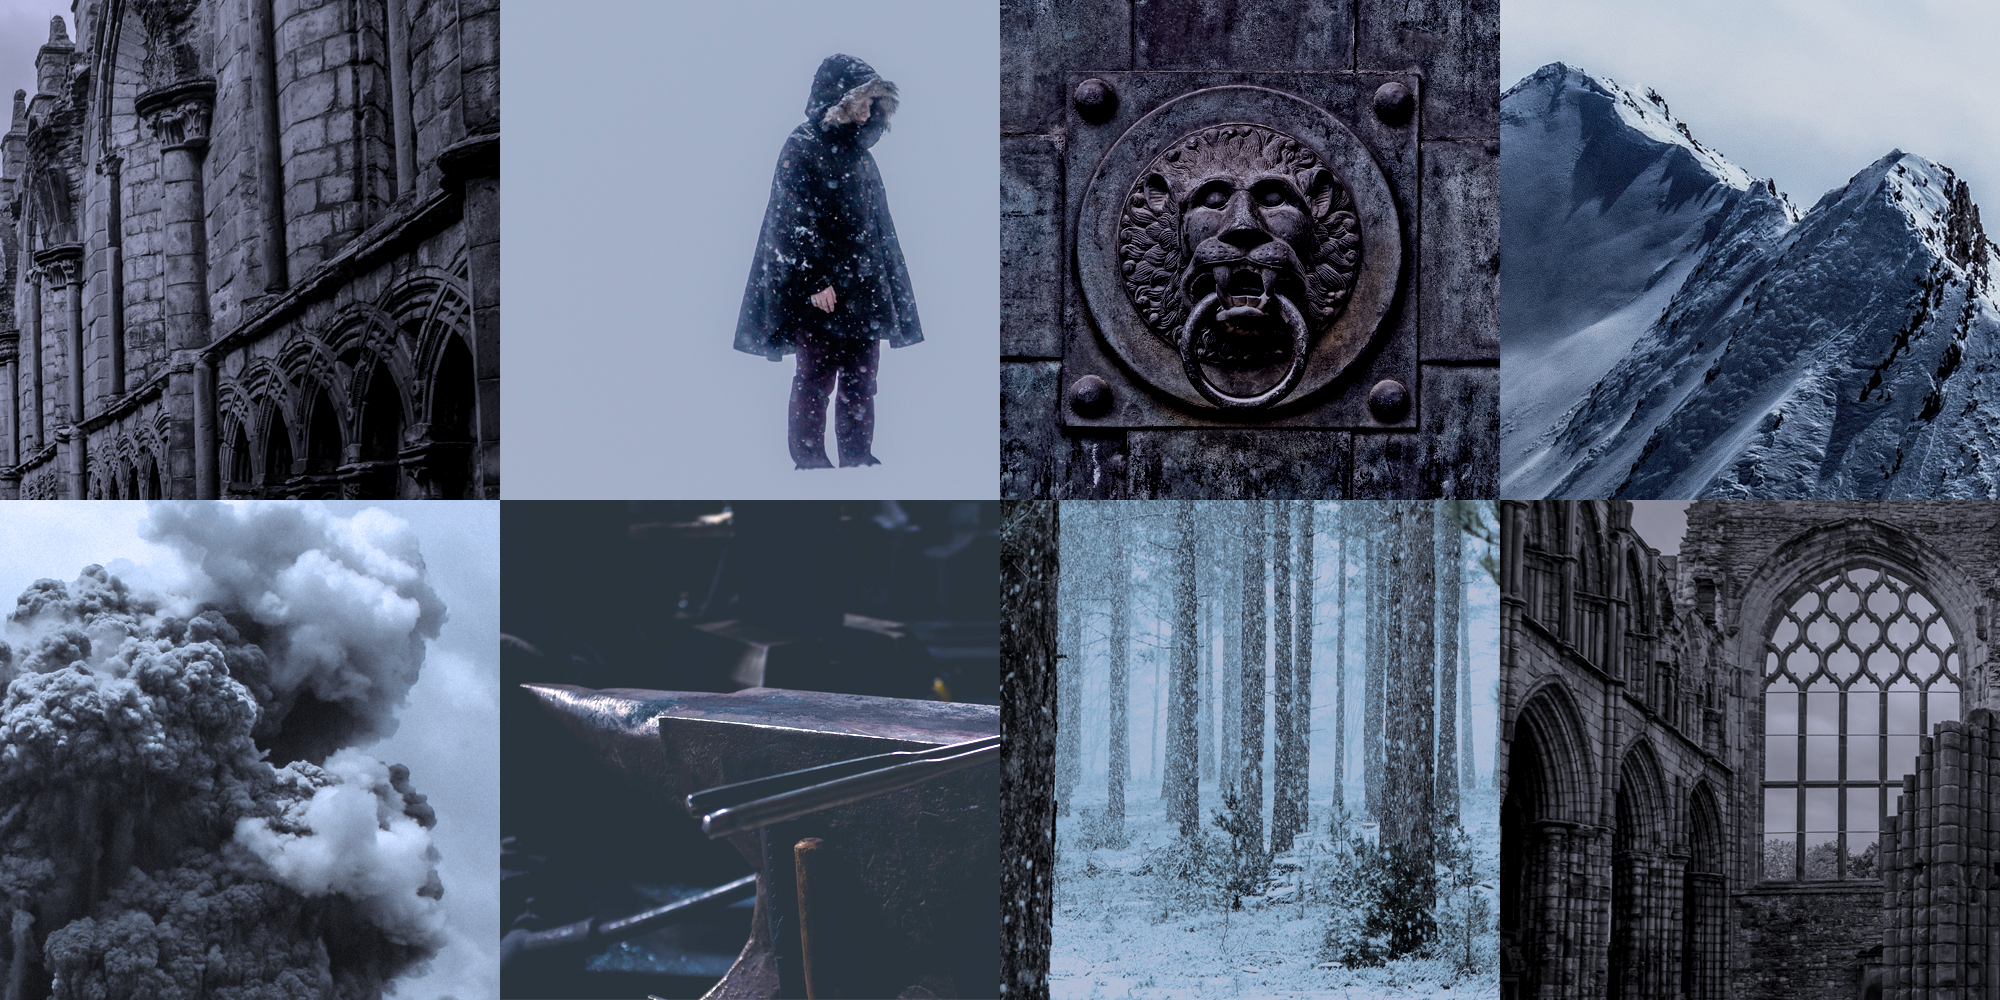 Aesthetic Board for my WIP The Wolves of the Far North